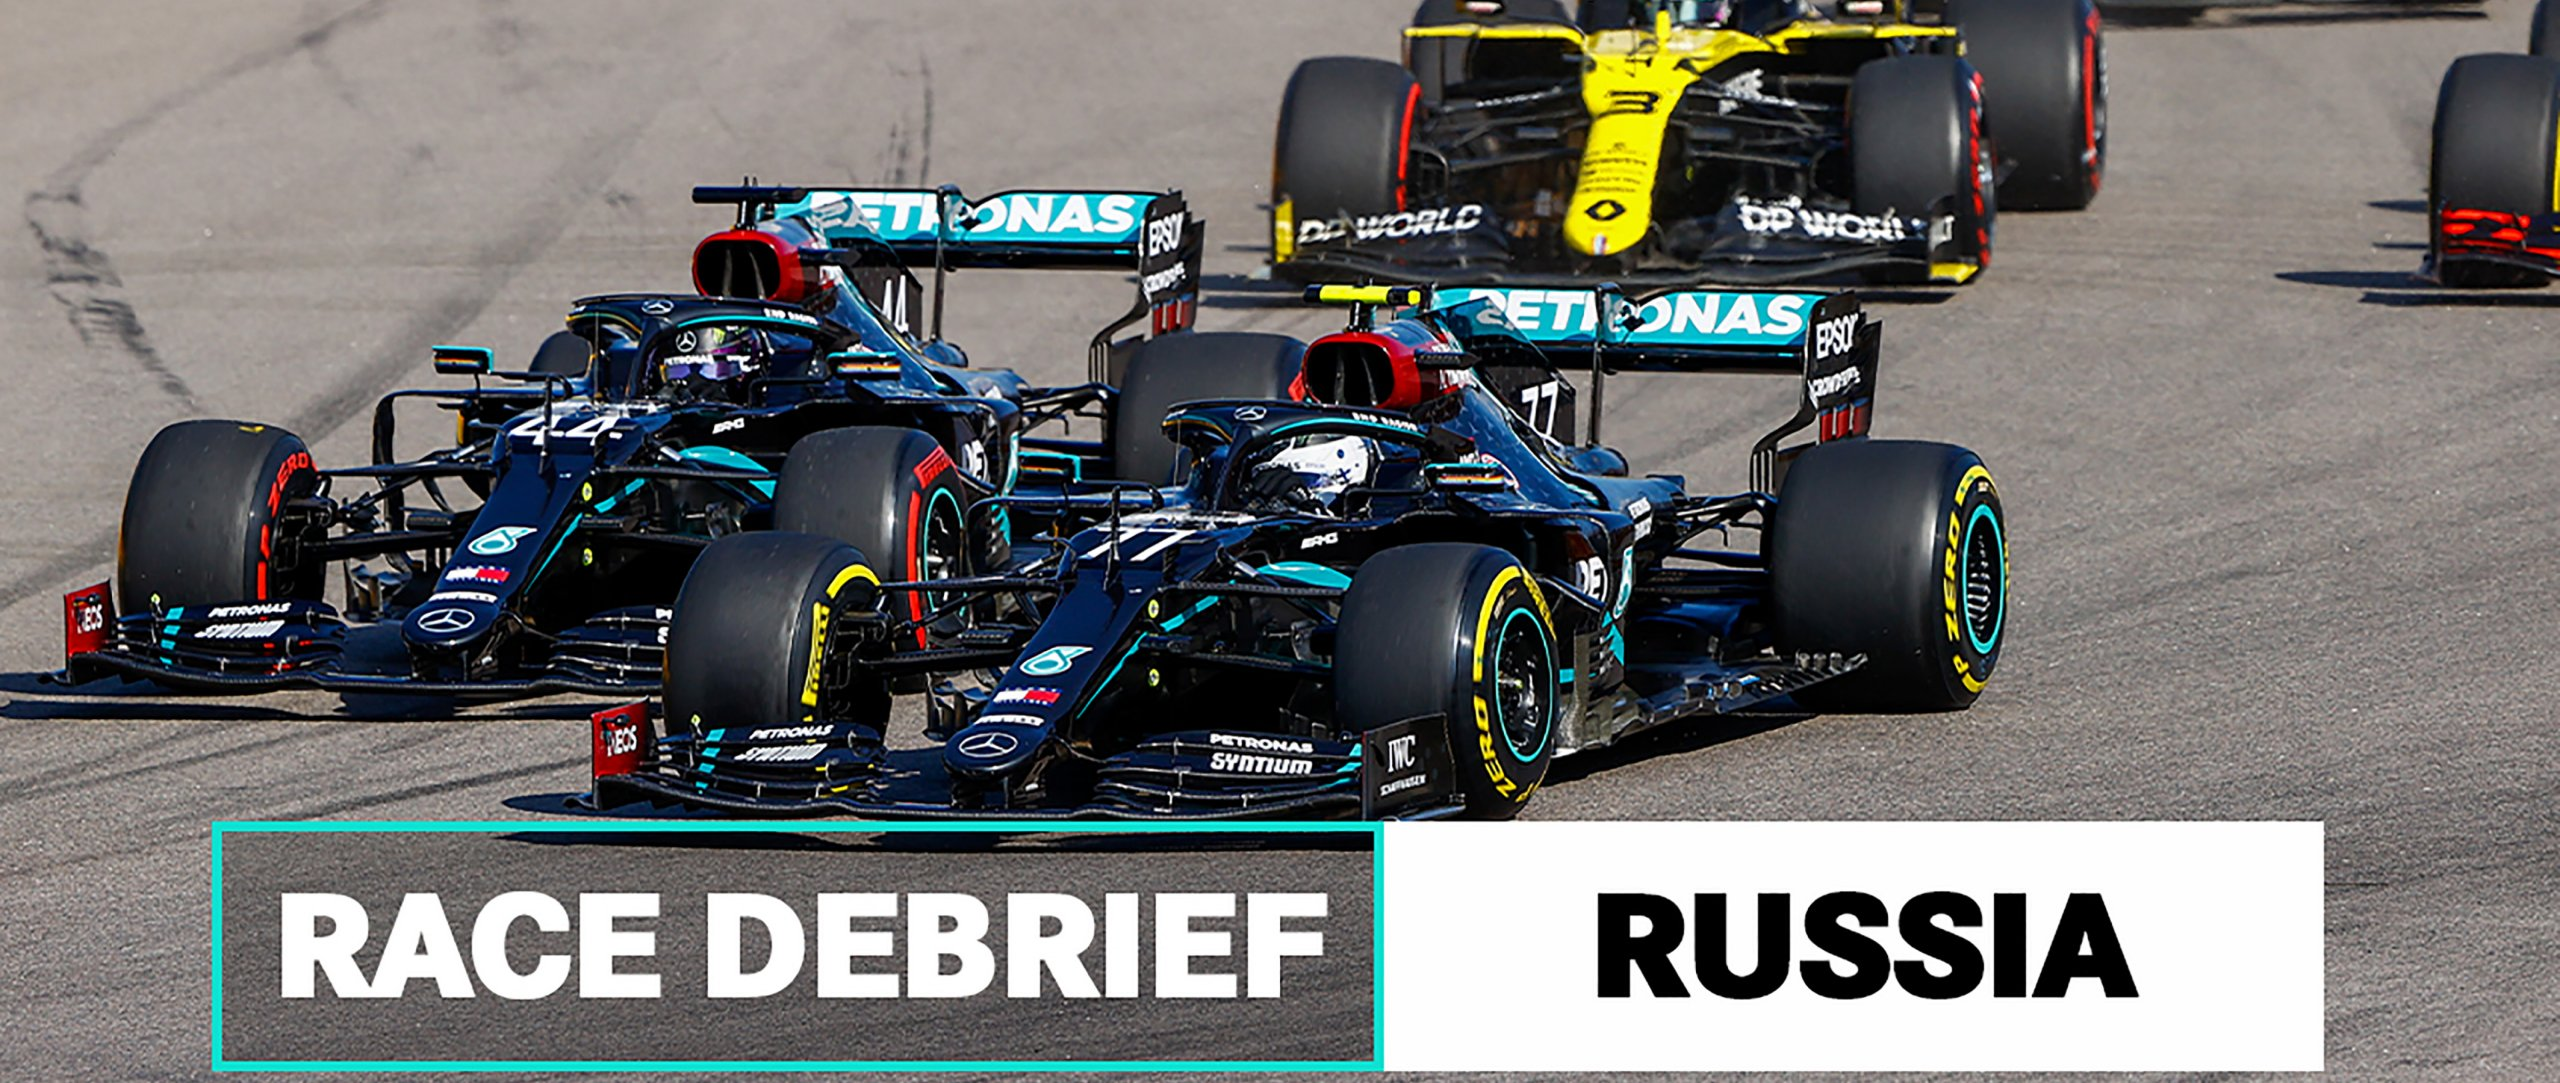 RACE-DEBRIEF---RUSSIA-(16.9_4252)